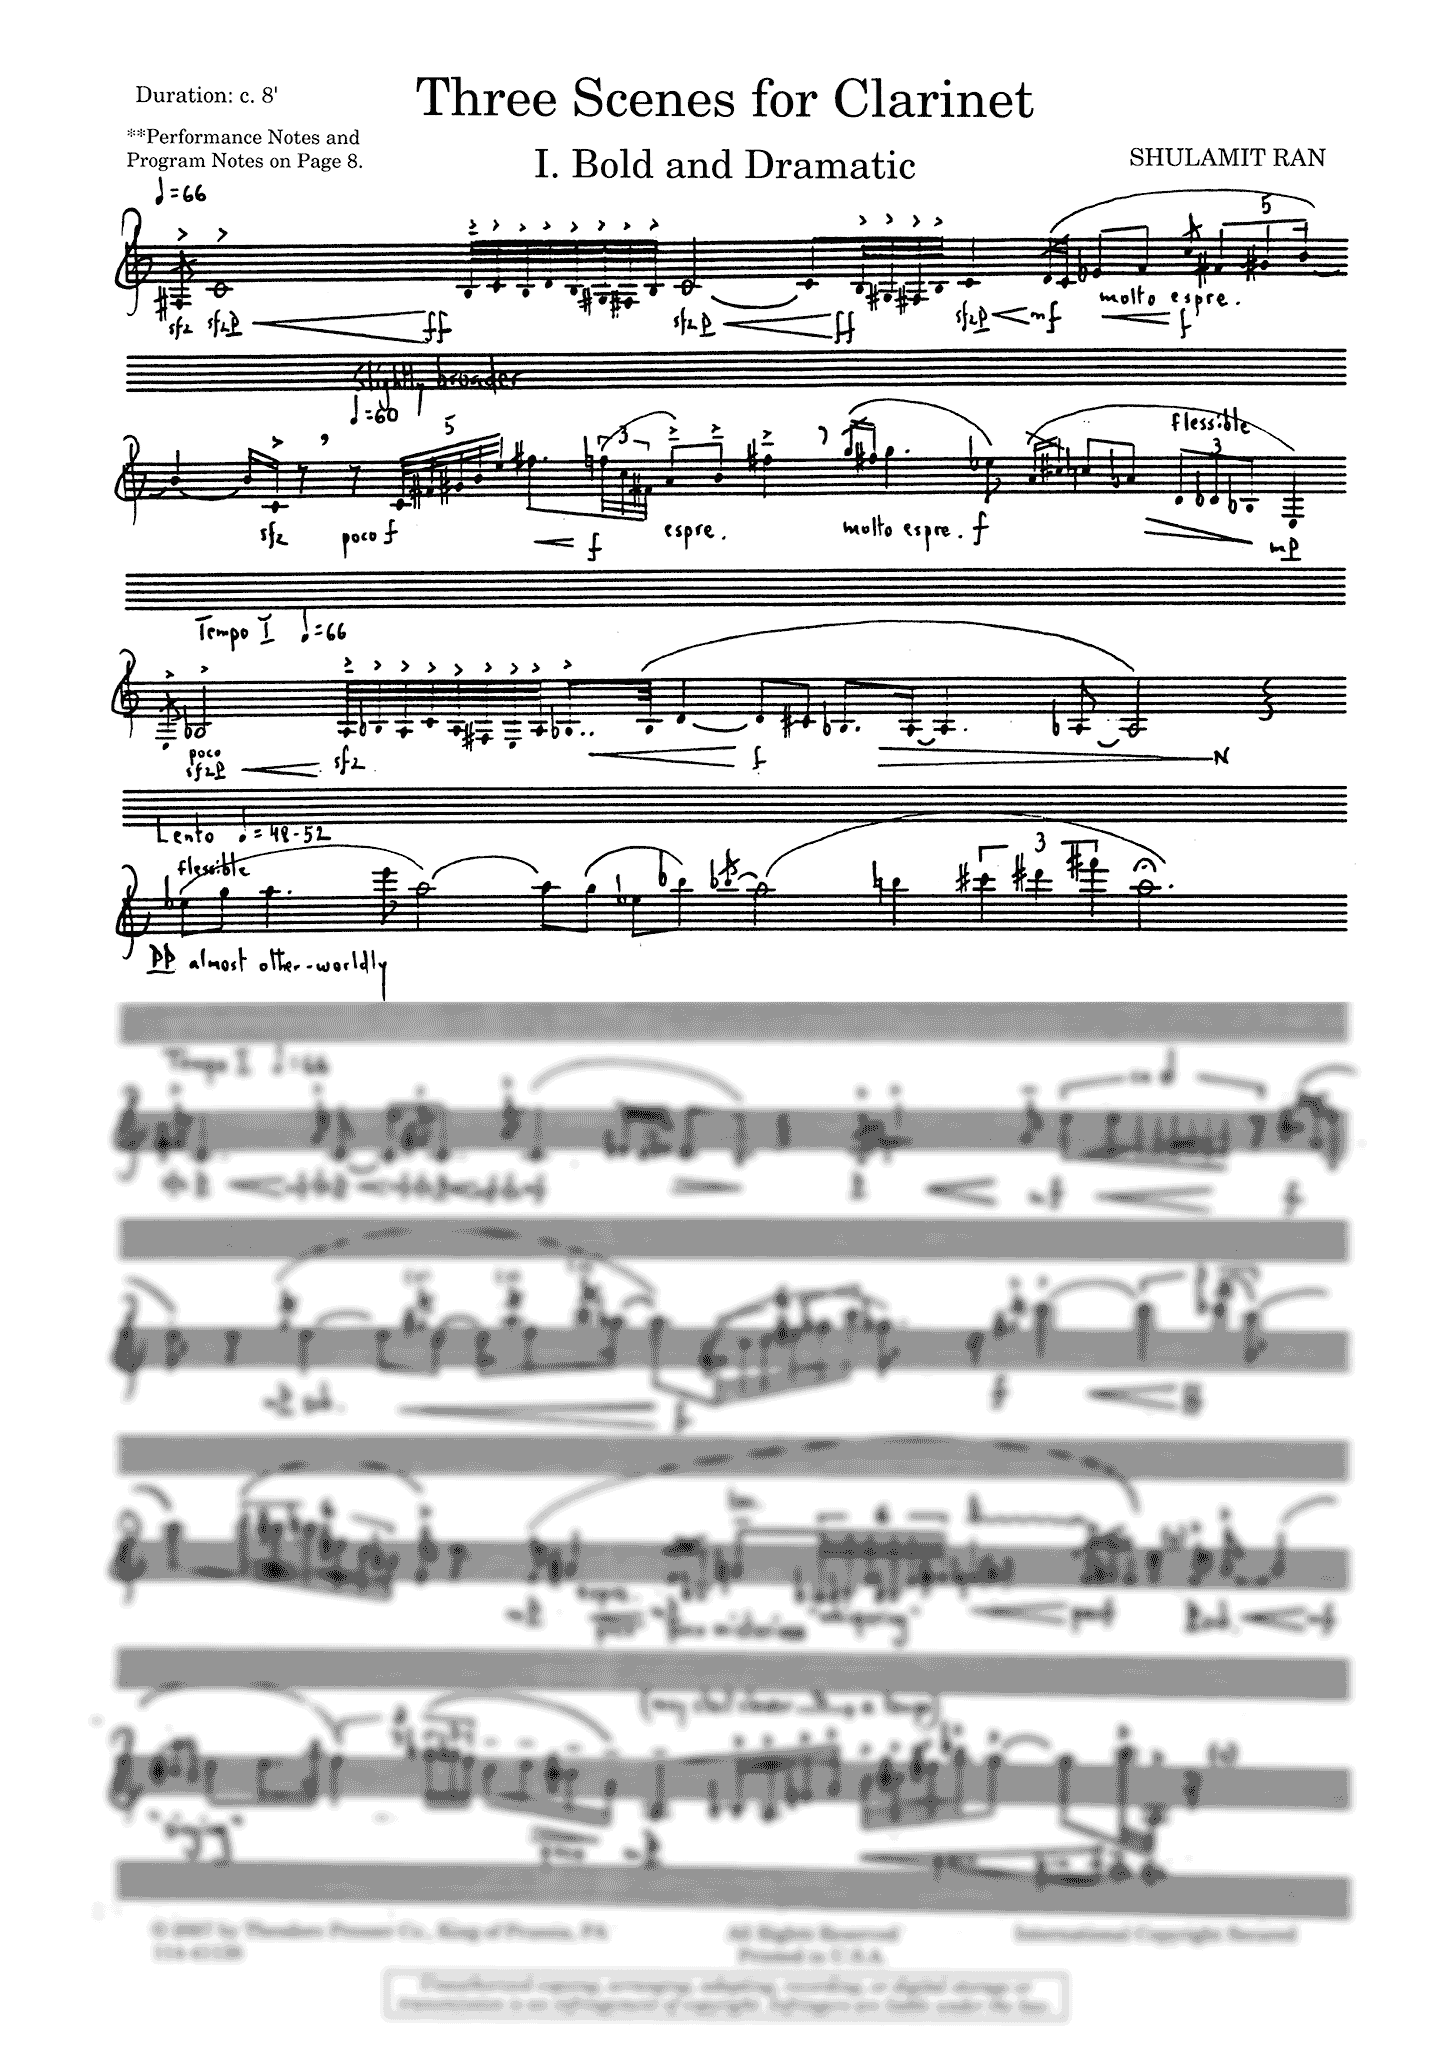 Three Scenes for Clarinet - Movement 1